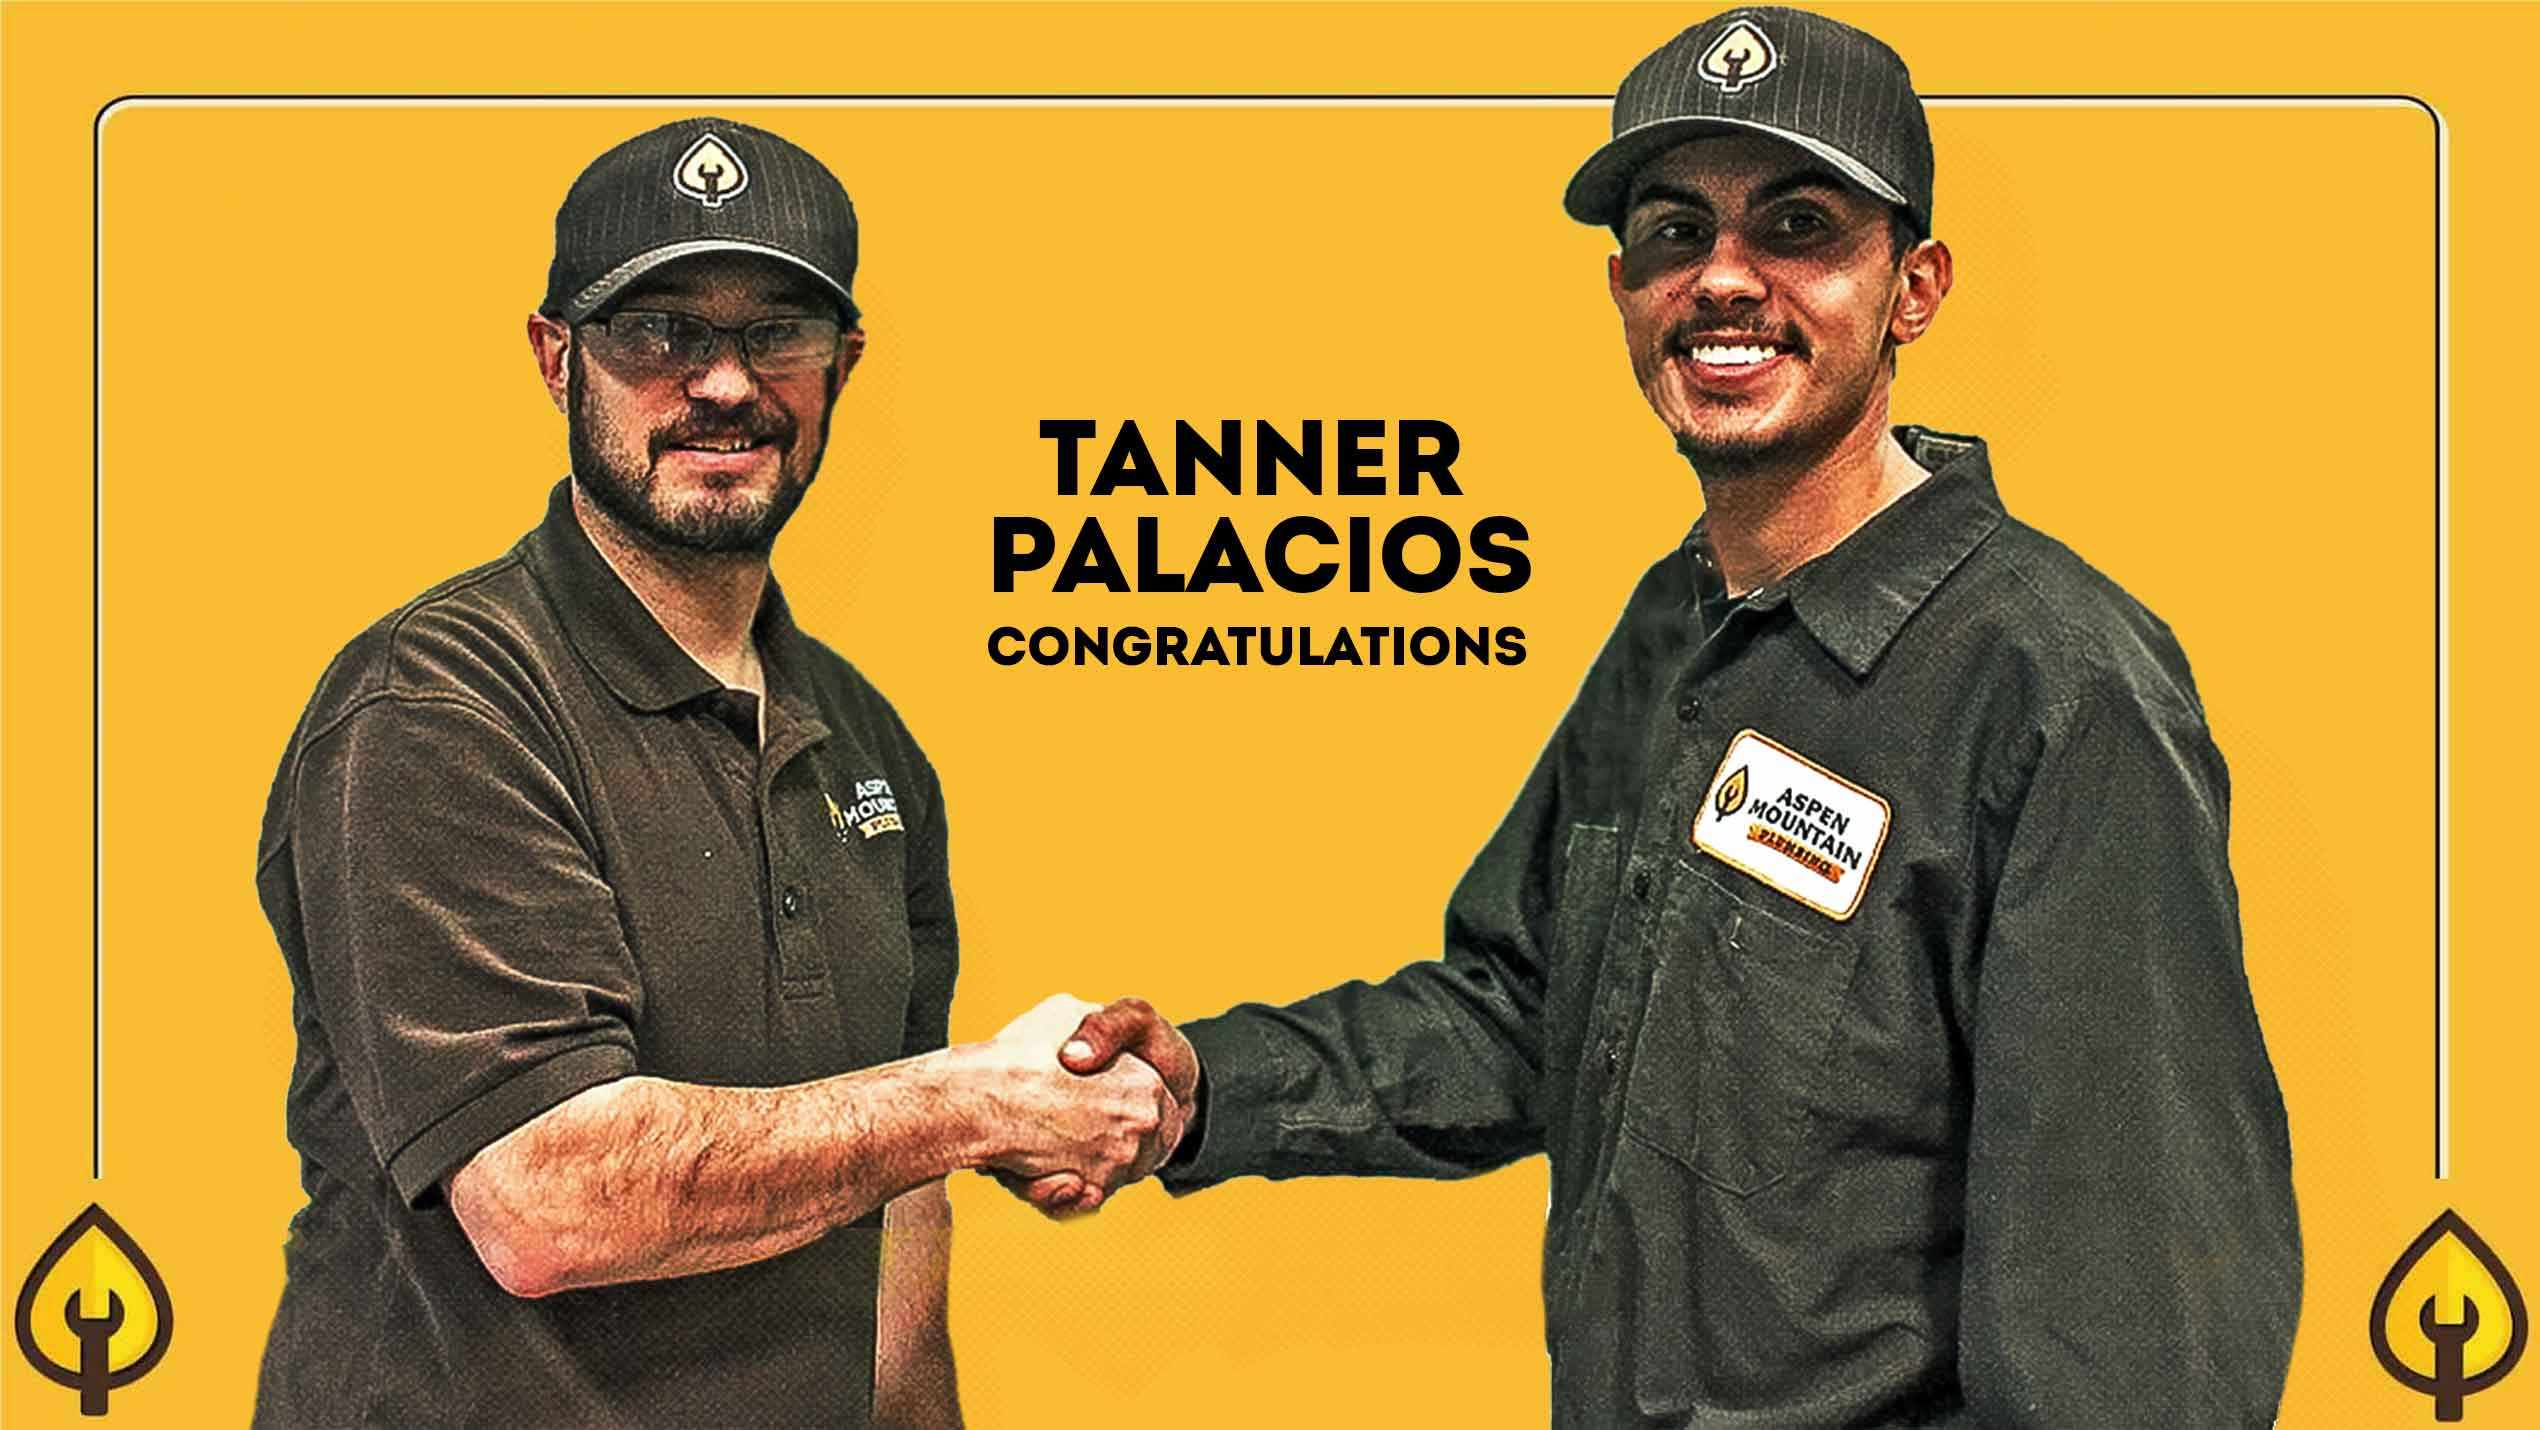 Aspen Mountain Plumbing is pleased to announce that Tanner Palacios has been promoted to Field Manager.